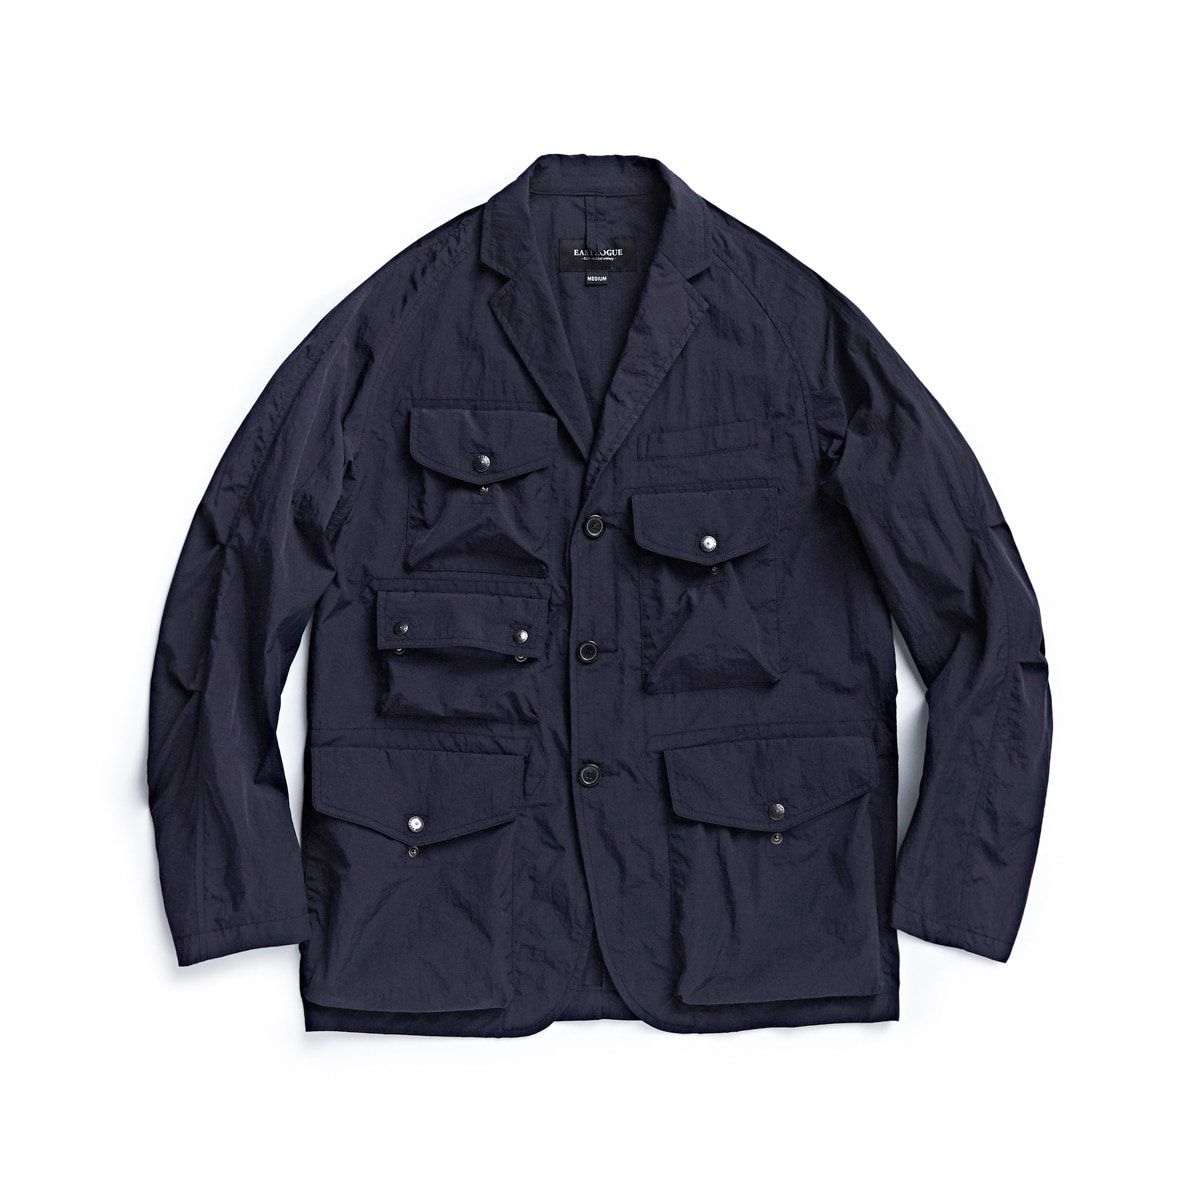 [EASTLOGUE] TREKKING JACKET 'NAVY NYLON WASHER'